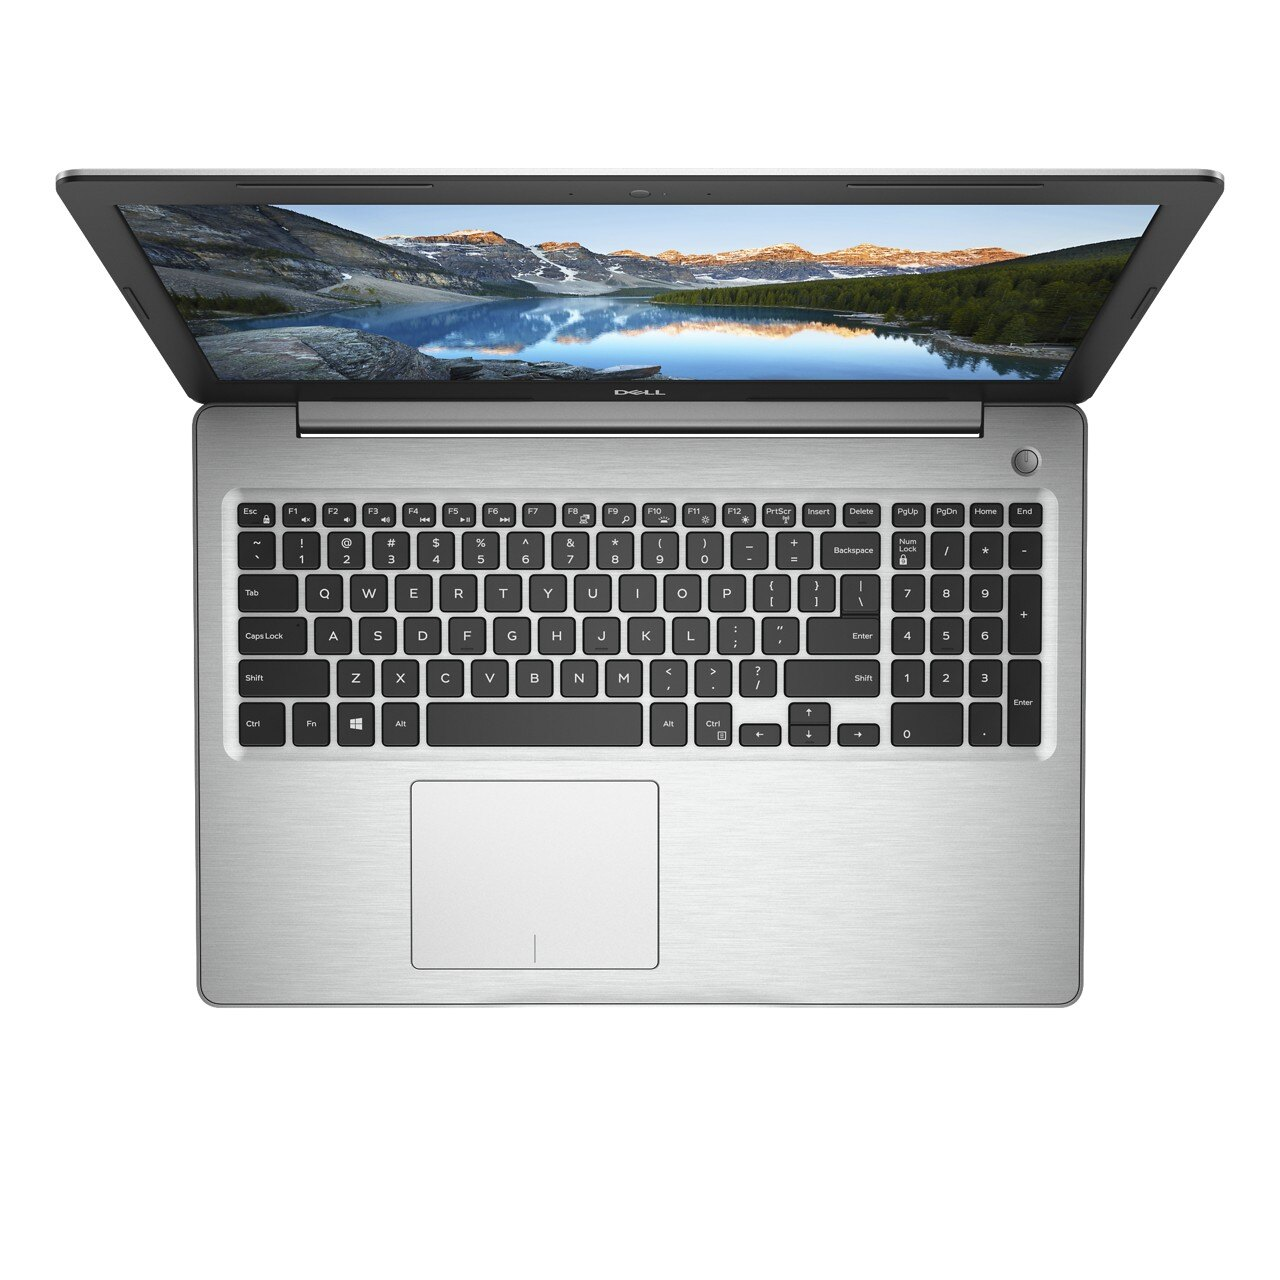 macbook air vs dell inspiron 15 5000